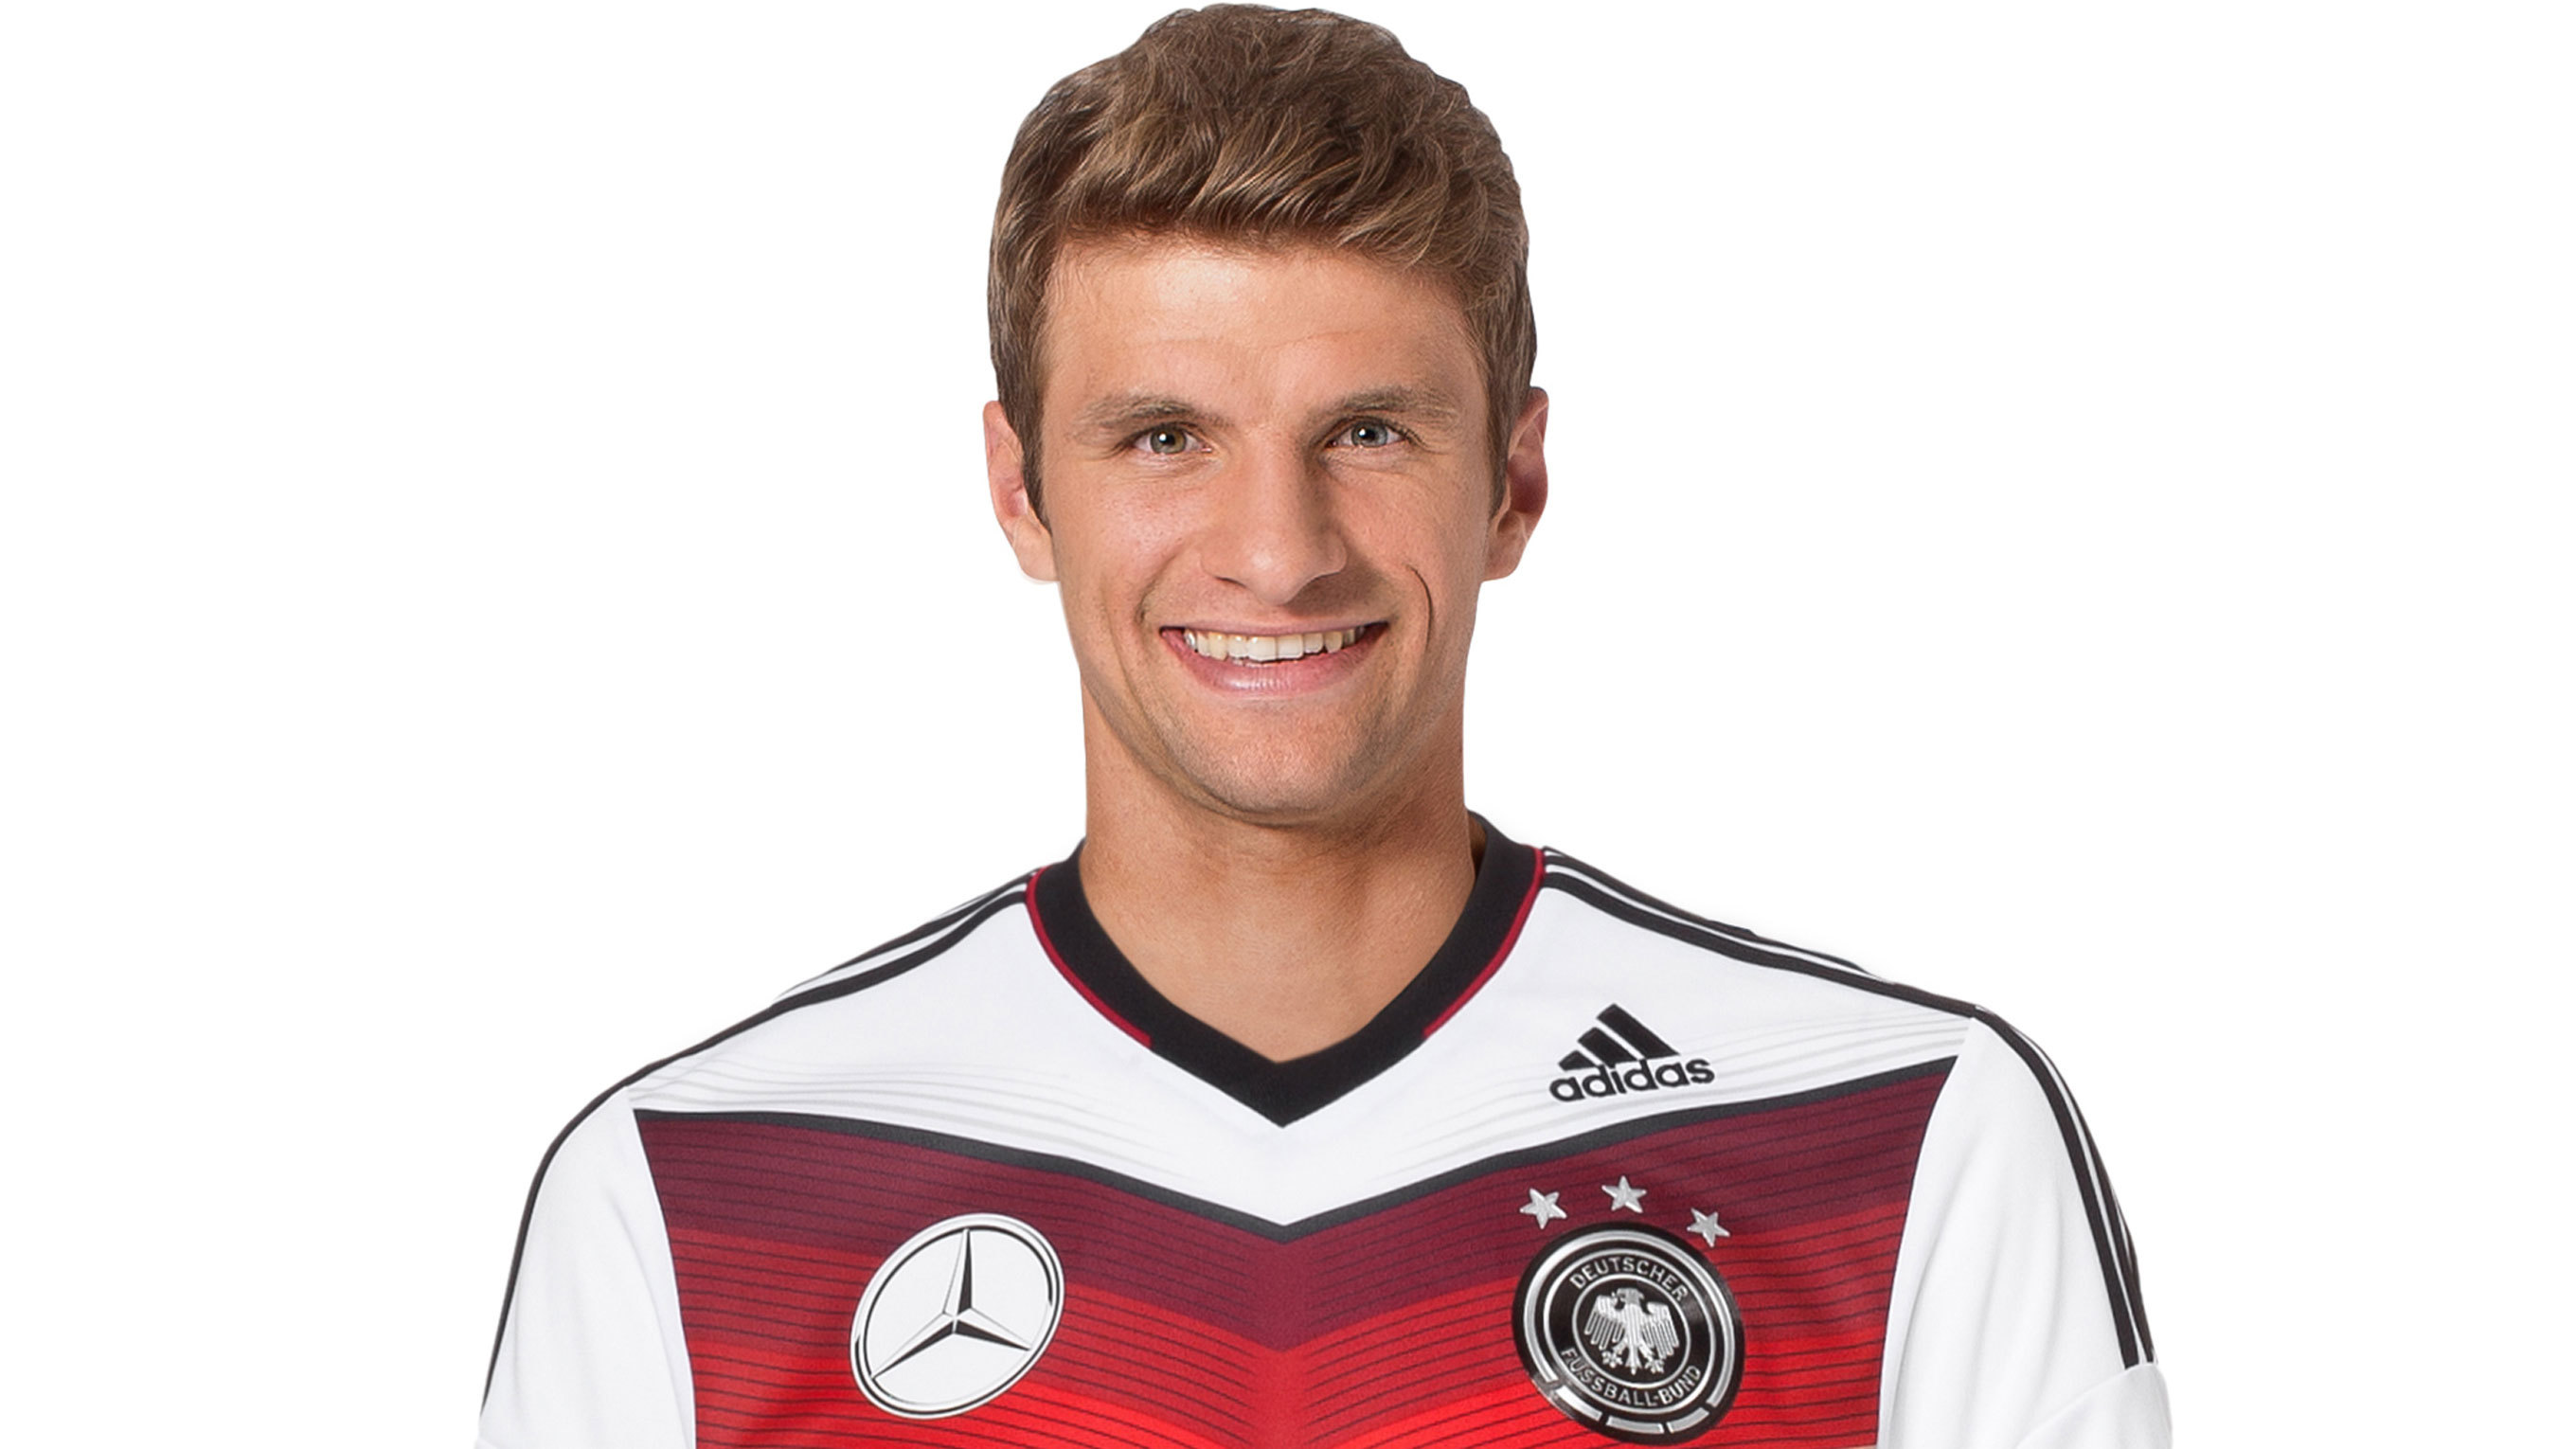 Thomas Muller Wallpapers